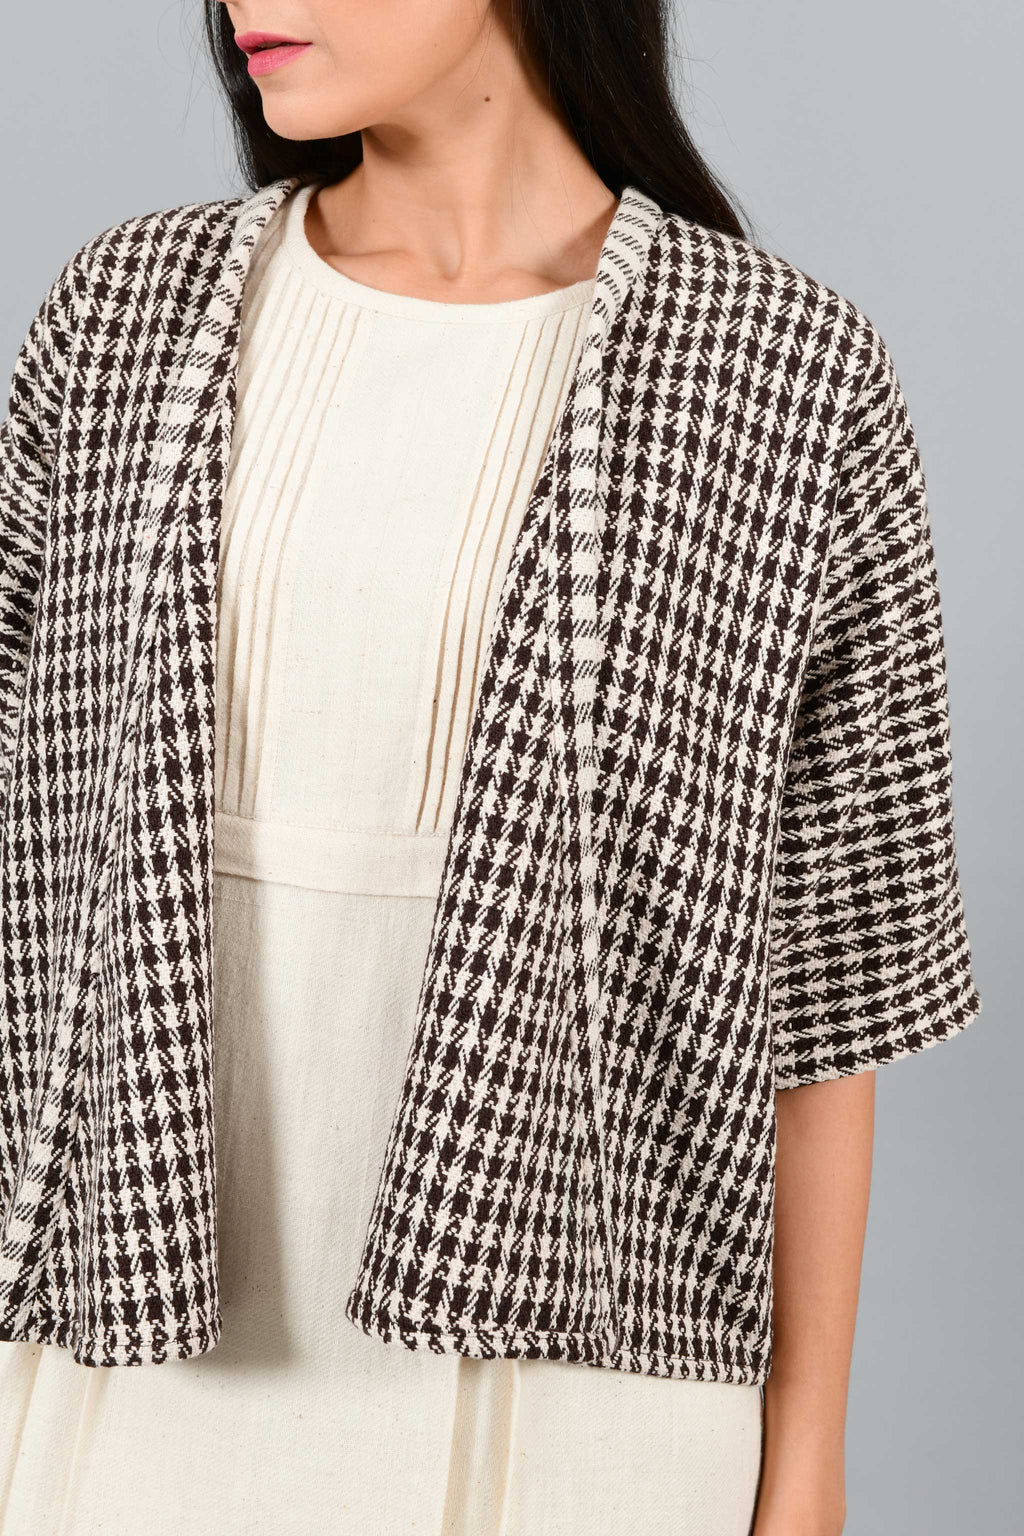 Front close up of an Indian Womenswear female model wearing Brown and off-white chequred handspun and handwoven free size shrug Jacket over an off-white cashmere cotton dress by Cotton Rack.